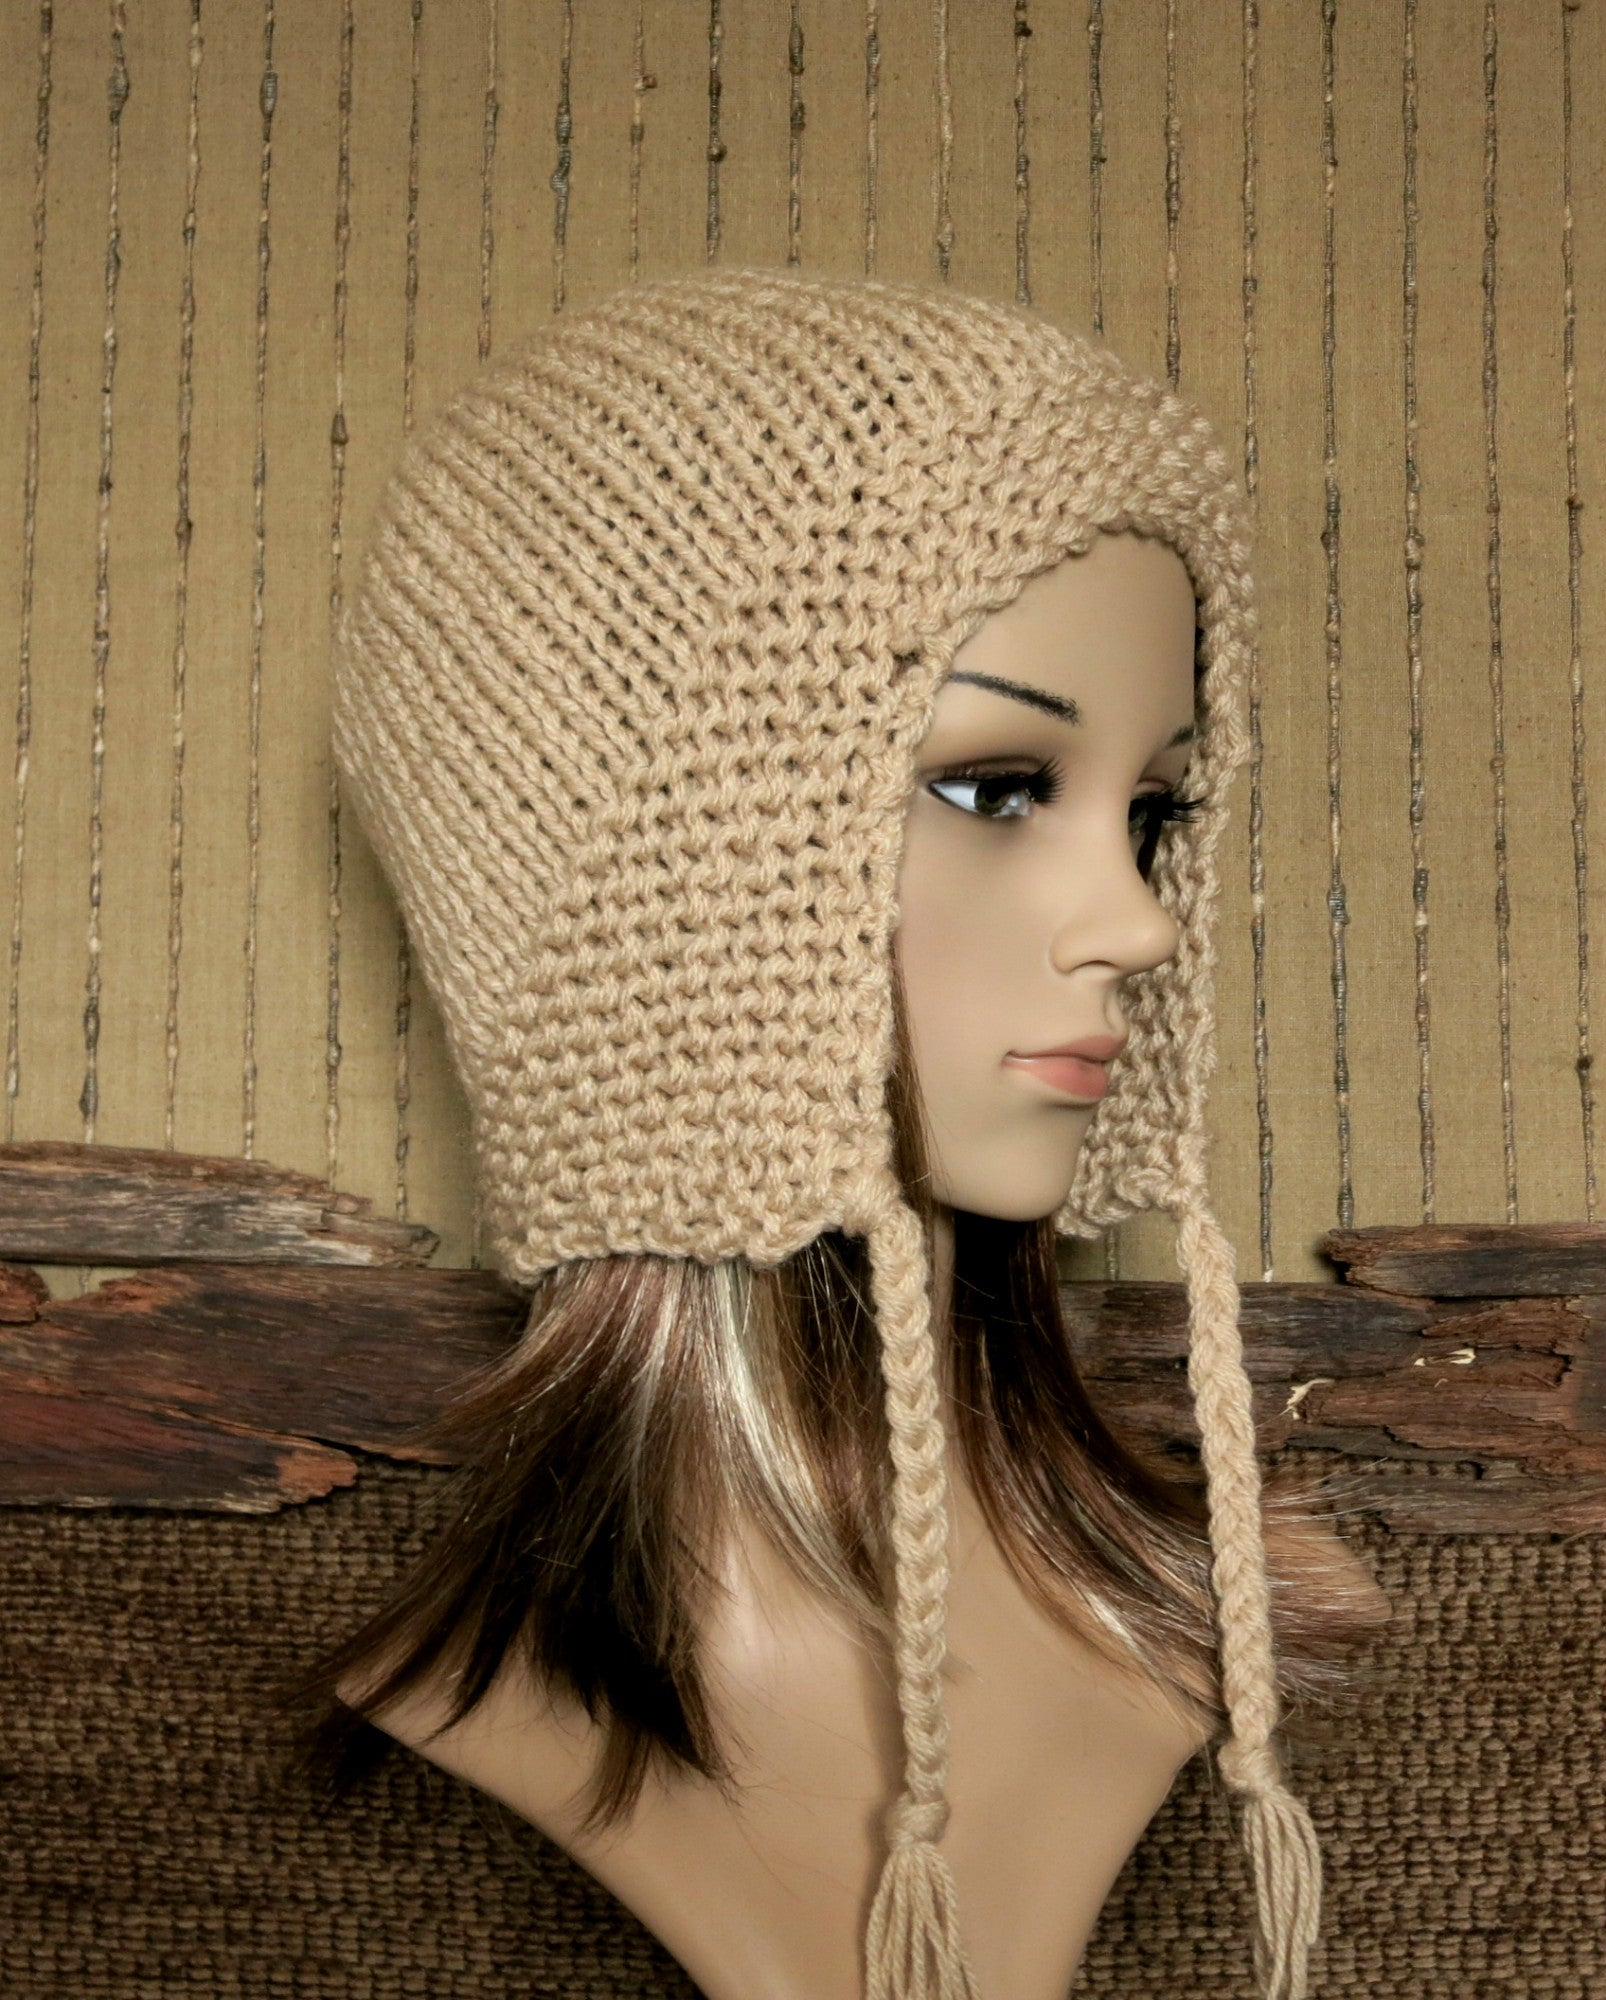 Beanie-Hat-with-Ear-Flaps-Nchanted-Gifts